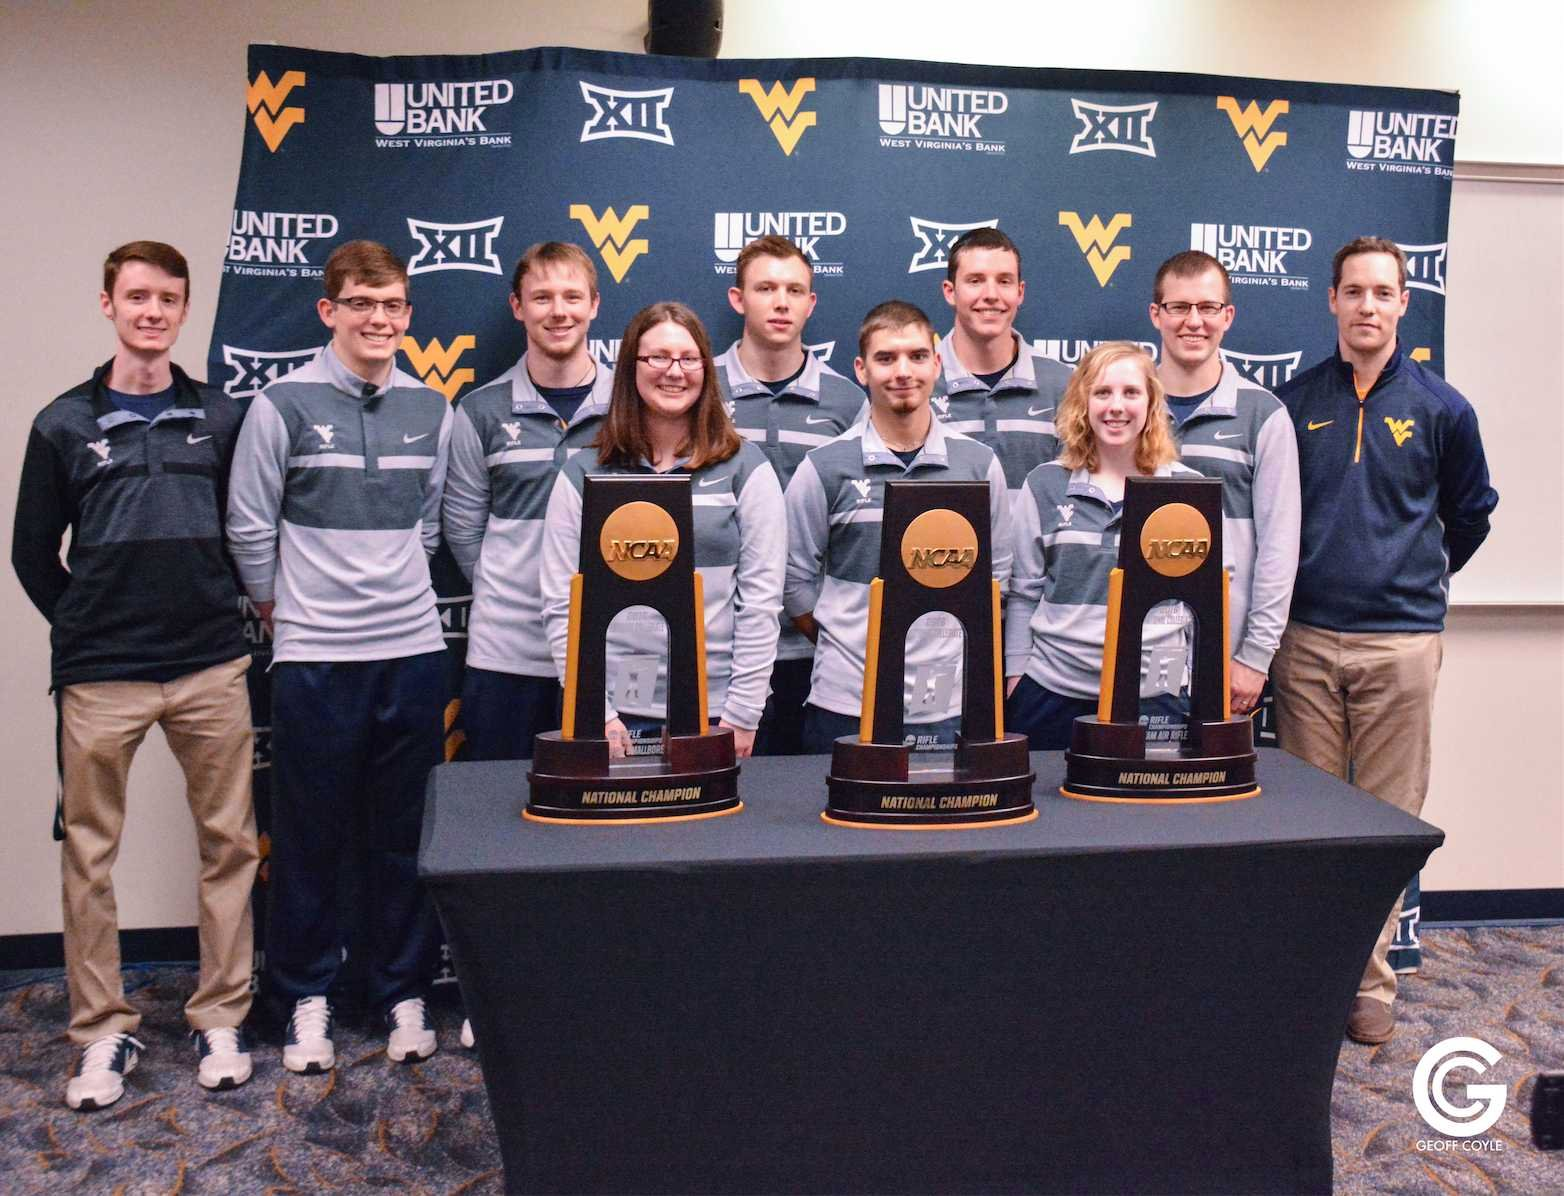 Another year, another national championship for the WVU Rifle team. (PHOTO: Geoff Coyle)